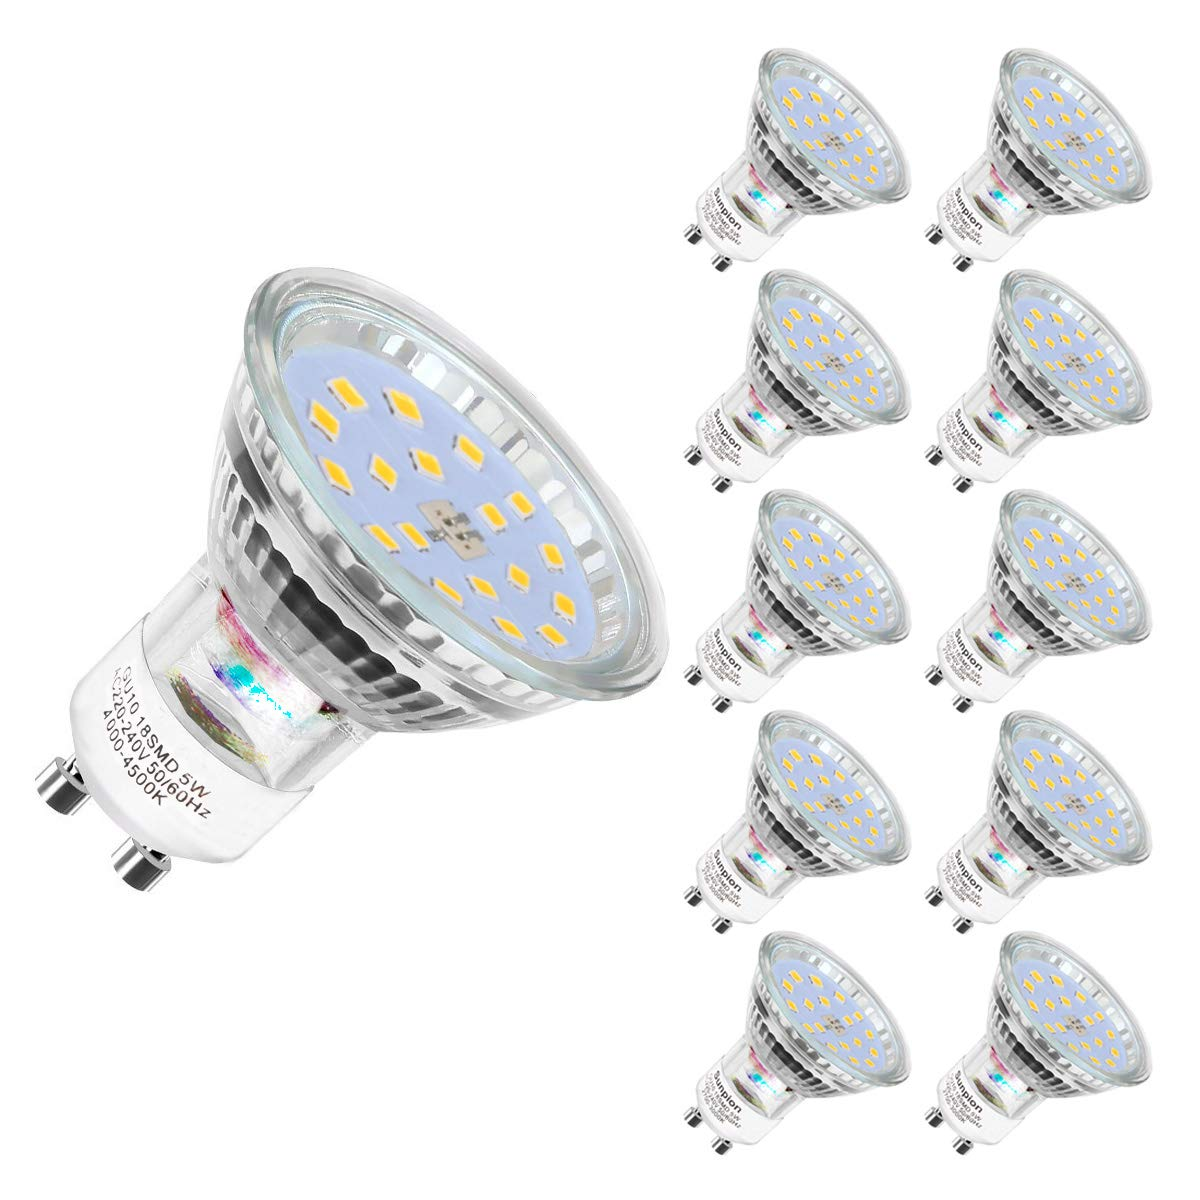 led Birnen LED ReflektorLampe 600 Lumen GU10 LED Warmweiss LED GU10 lampe Warmwei/ß 2700 Kelvin 5W ersetzt 60W Watt Halogen| LED Leuchtmittel Gu10| 10er Pack